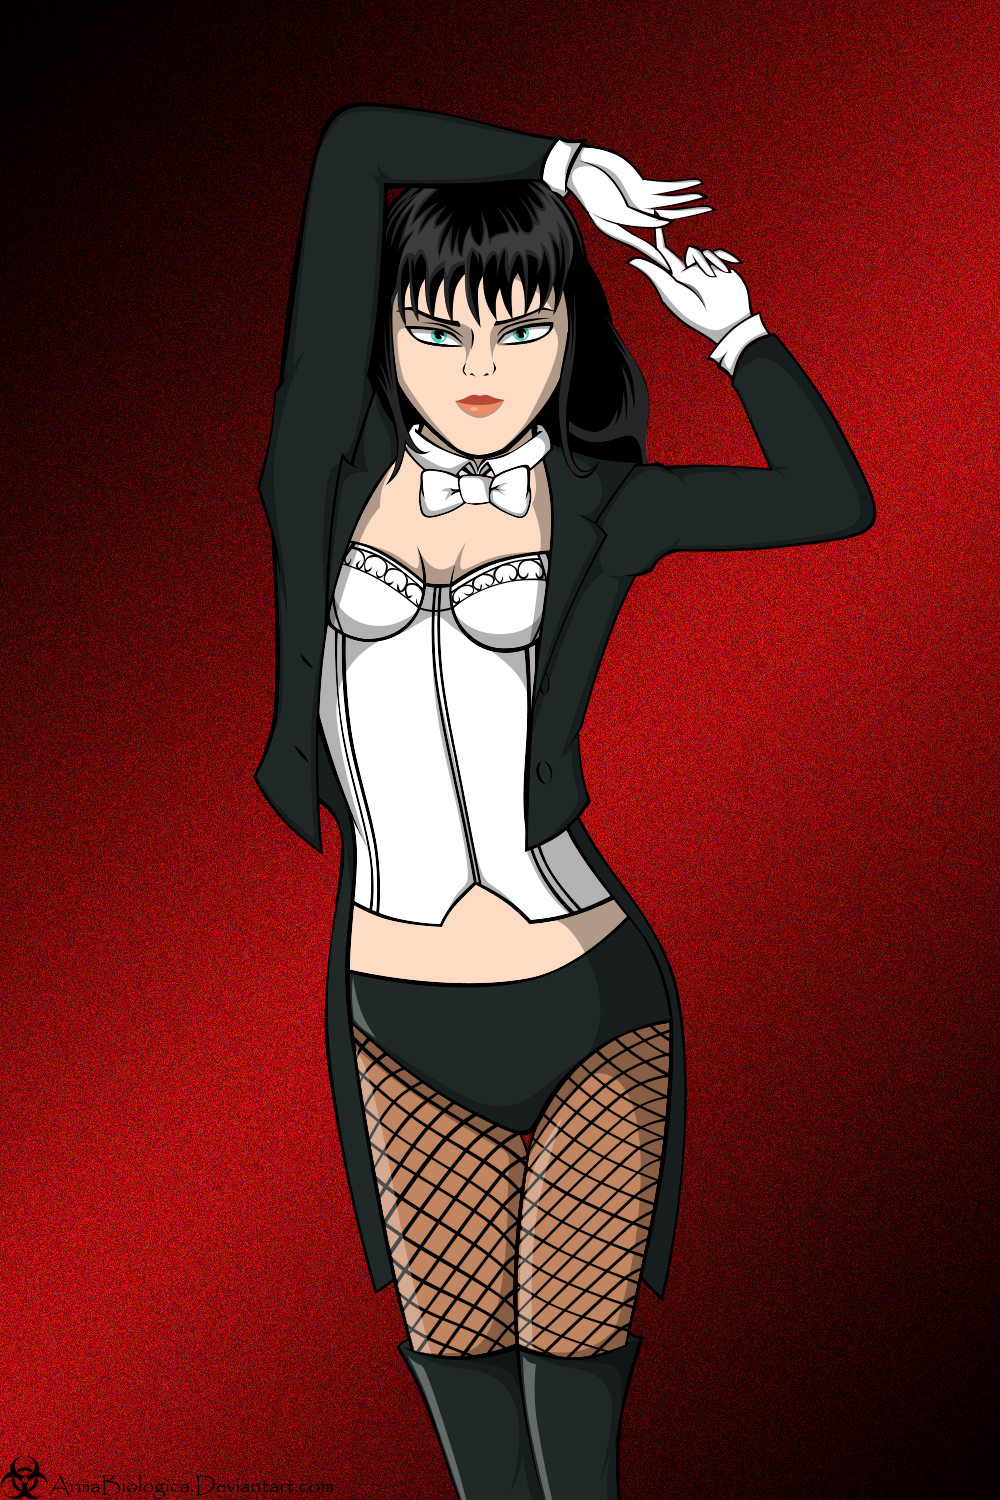 zatanna dc wallpaper - photo #35